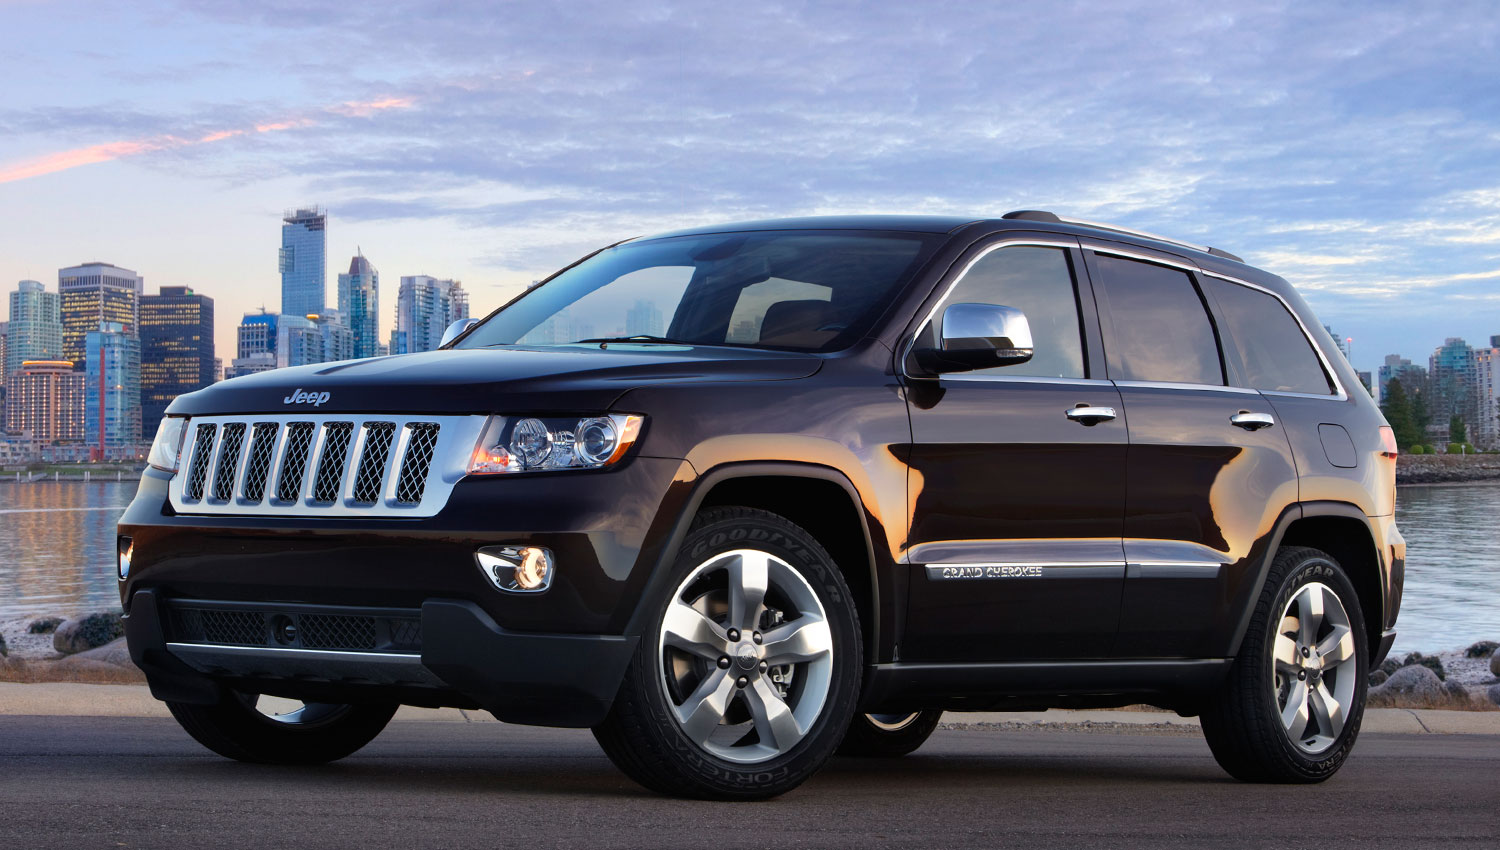 jeep grand cherokee images #3